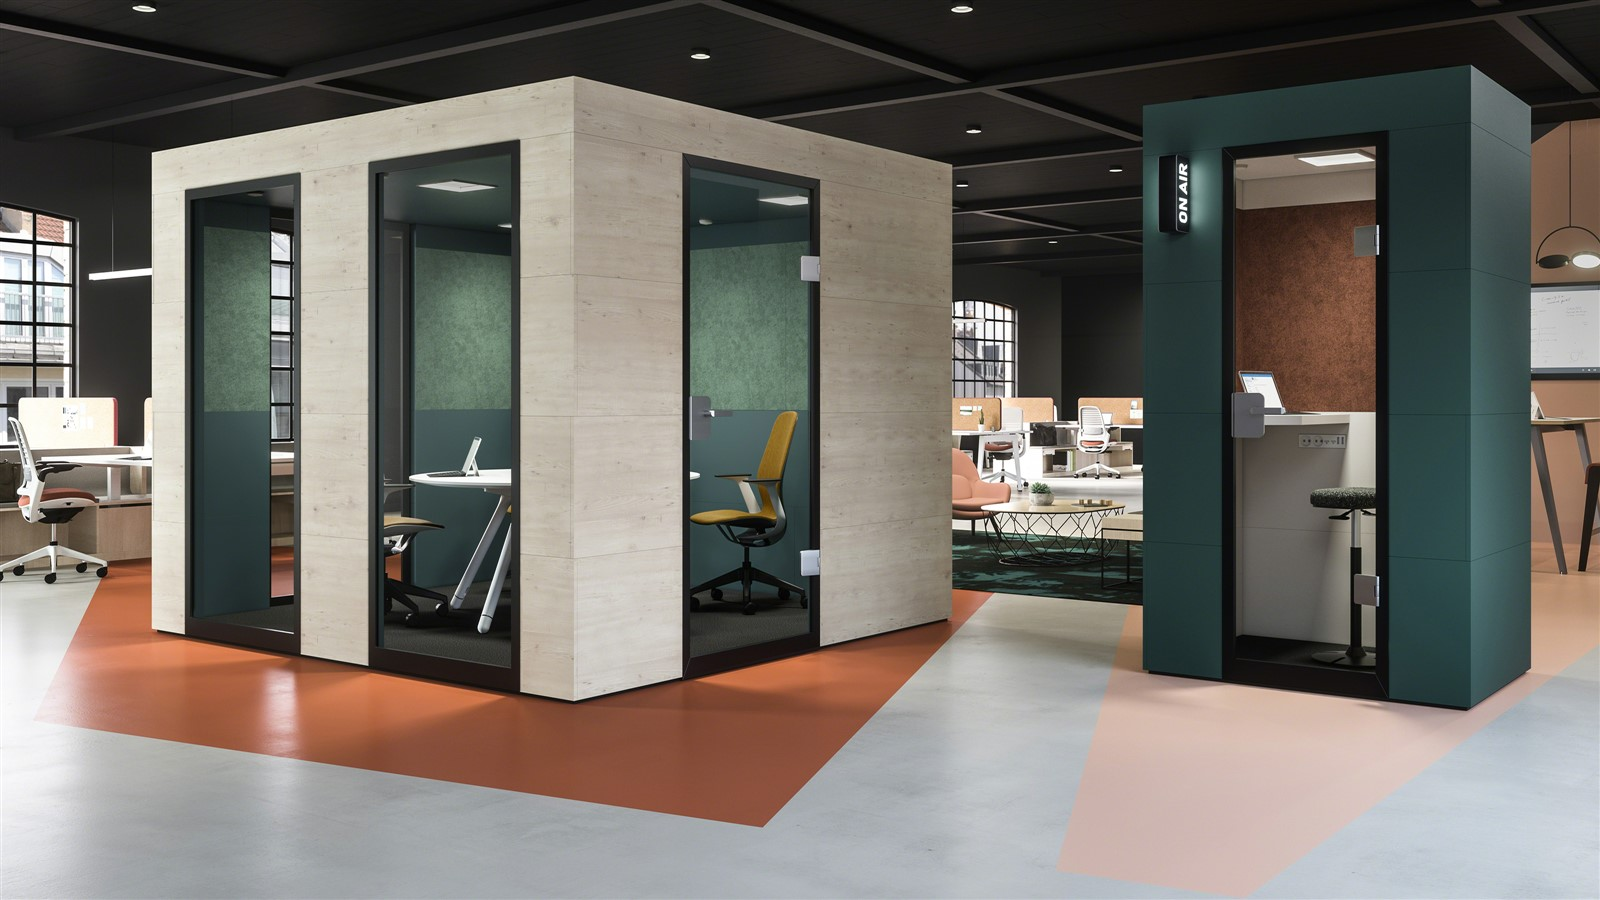 Video collaboration & privacy boosting popularity of booths in SA offices